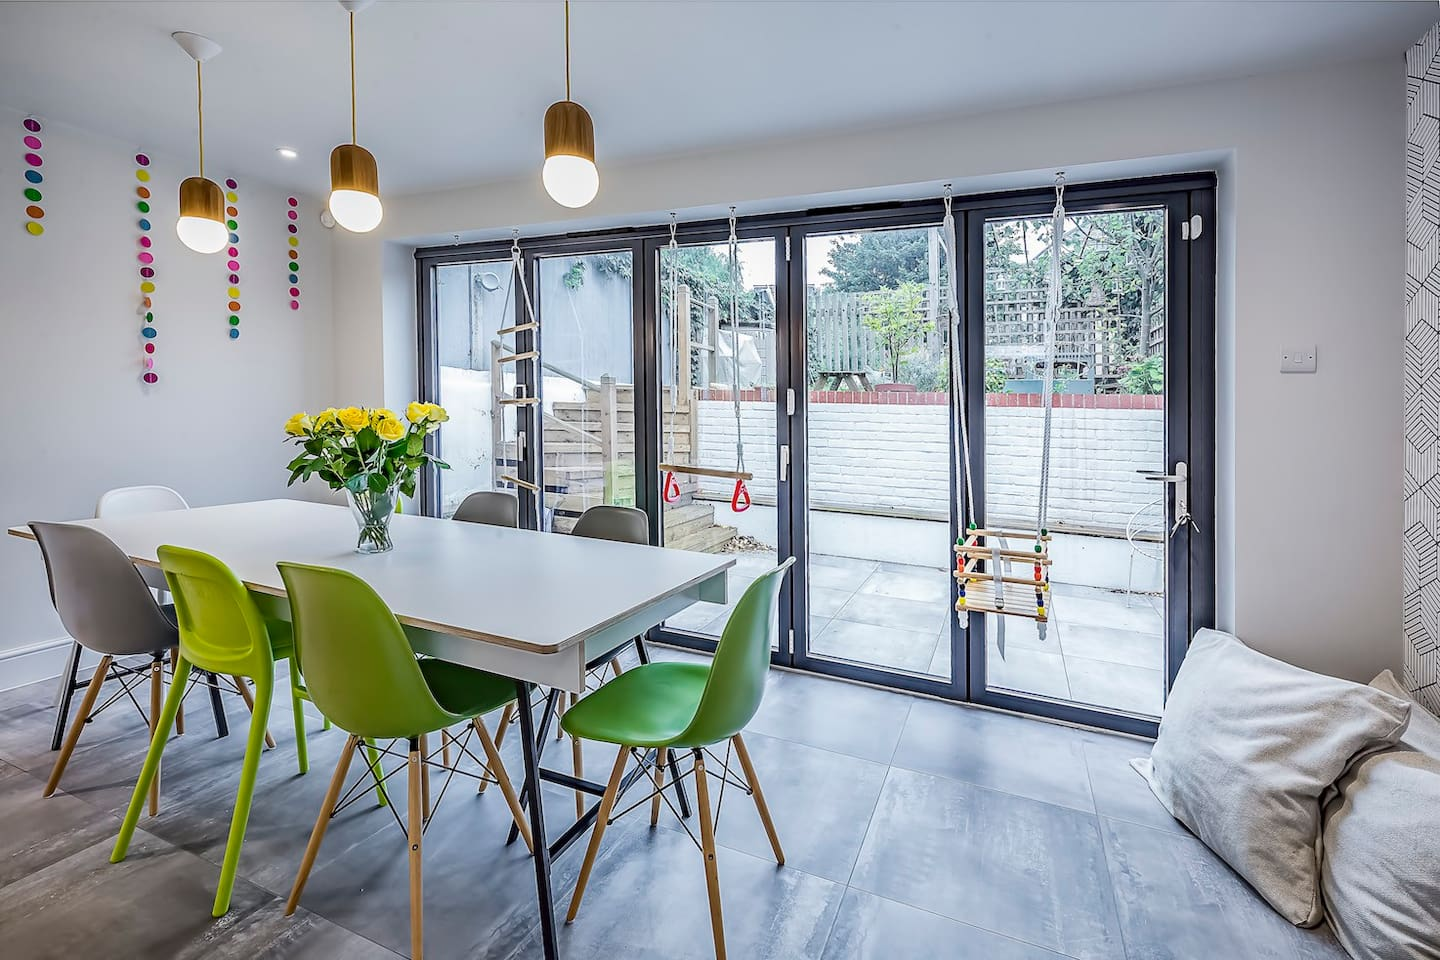 Kitchen seating area with bifold doors onto the garden, a huge table and hooks to hang swings for children